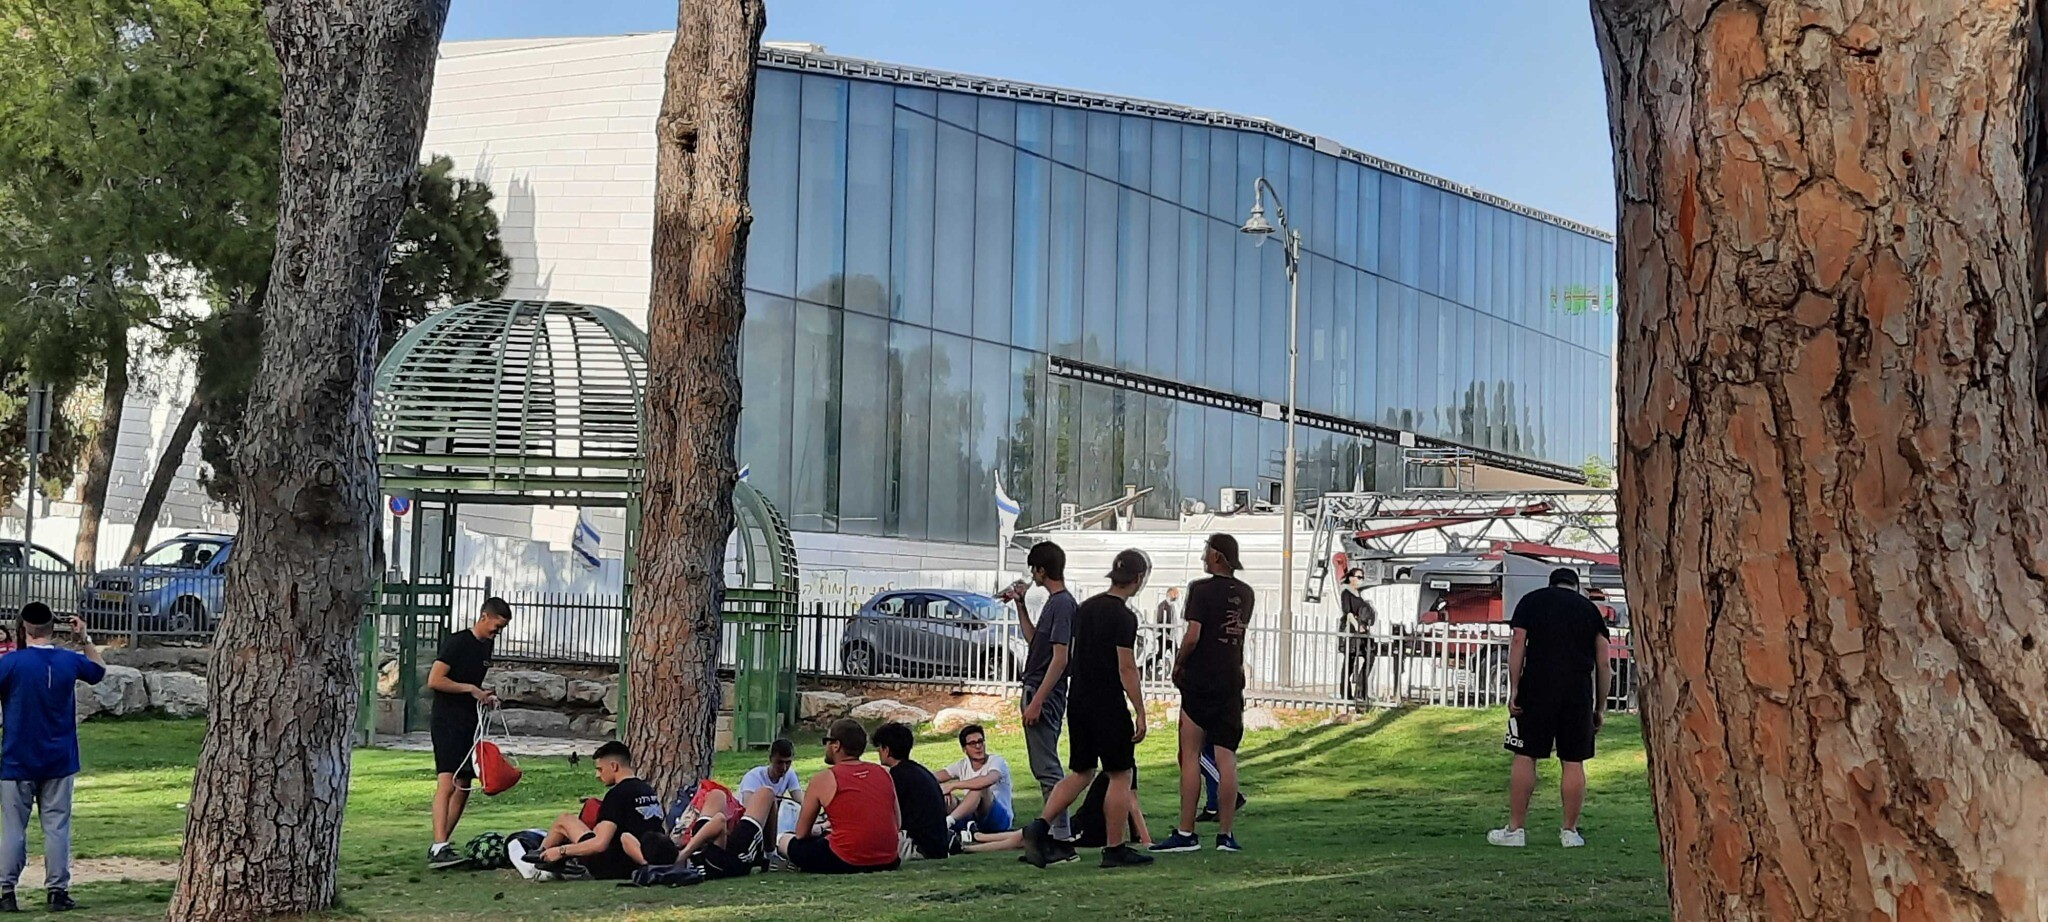 Students at a park next to the under-construction Museum of Tolerance Jerusalem on April 5, 2021. (Joshua Davidovich/Times of Israel)